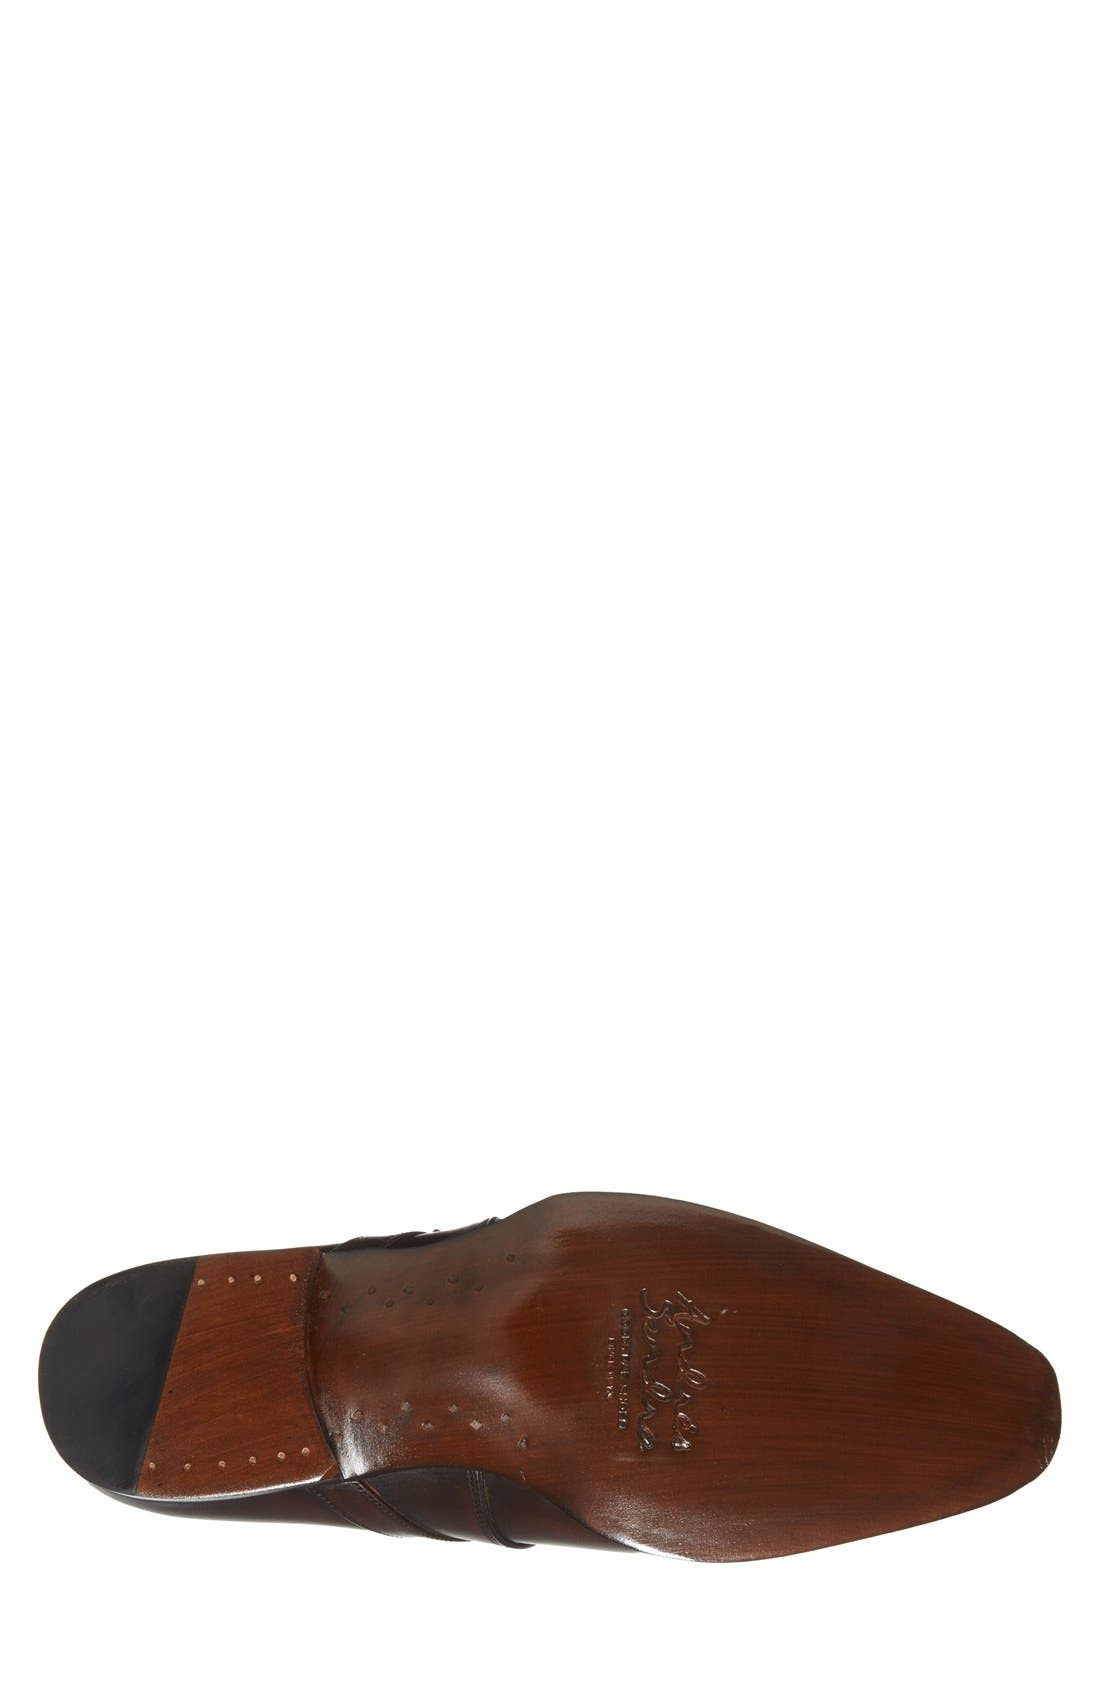 'Galway' Monk Strap Slip-On,                             Alternate thumbnail 4, color,                             Brown